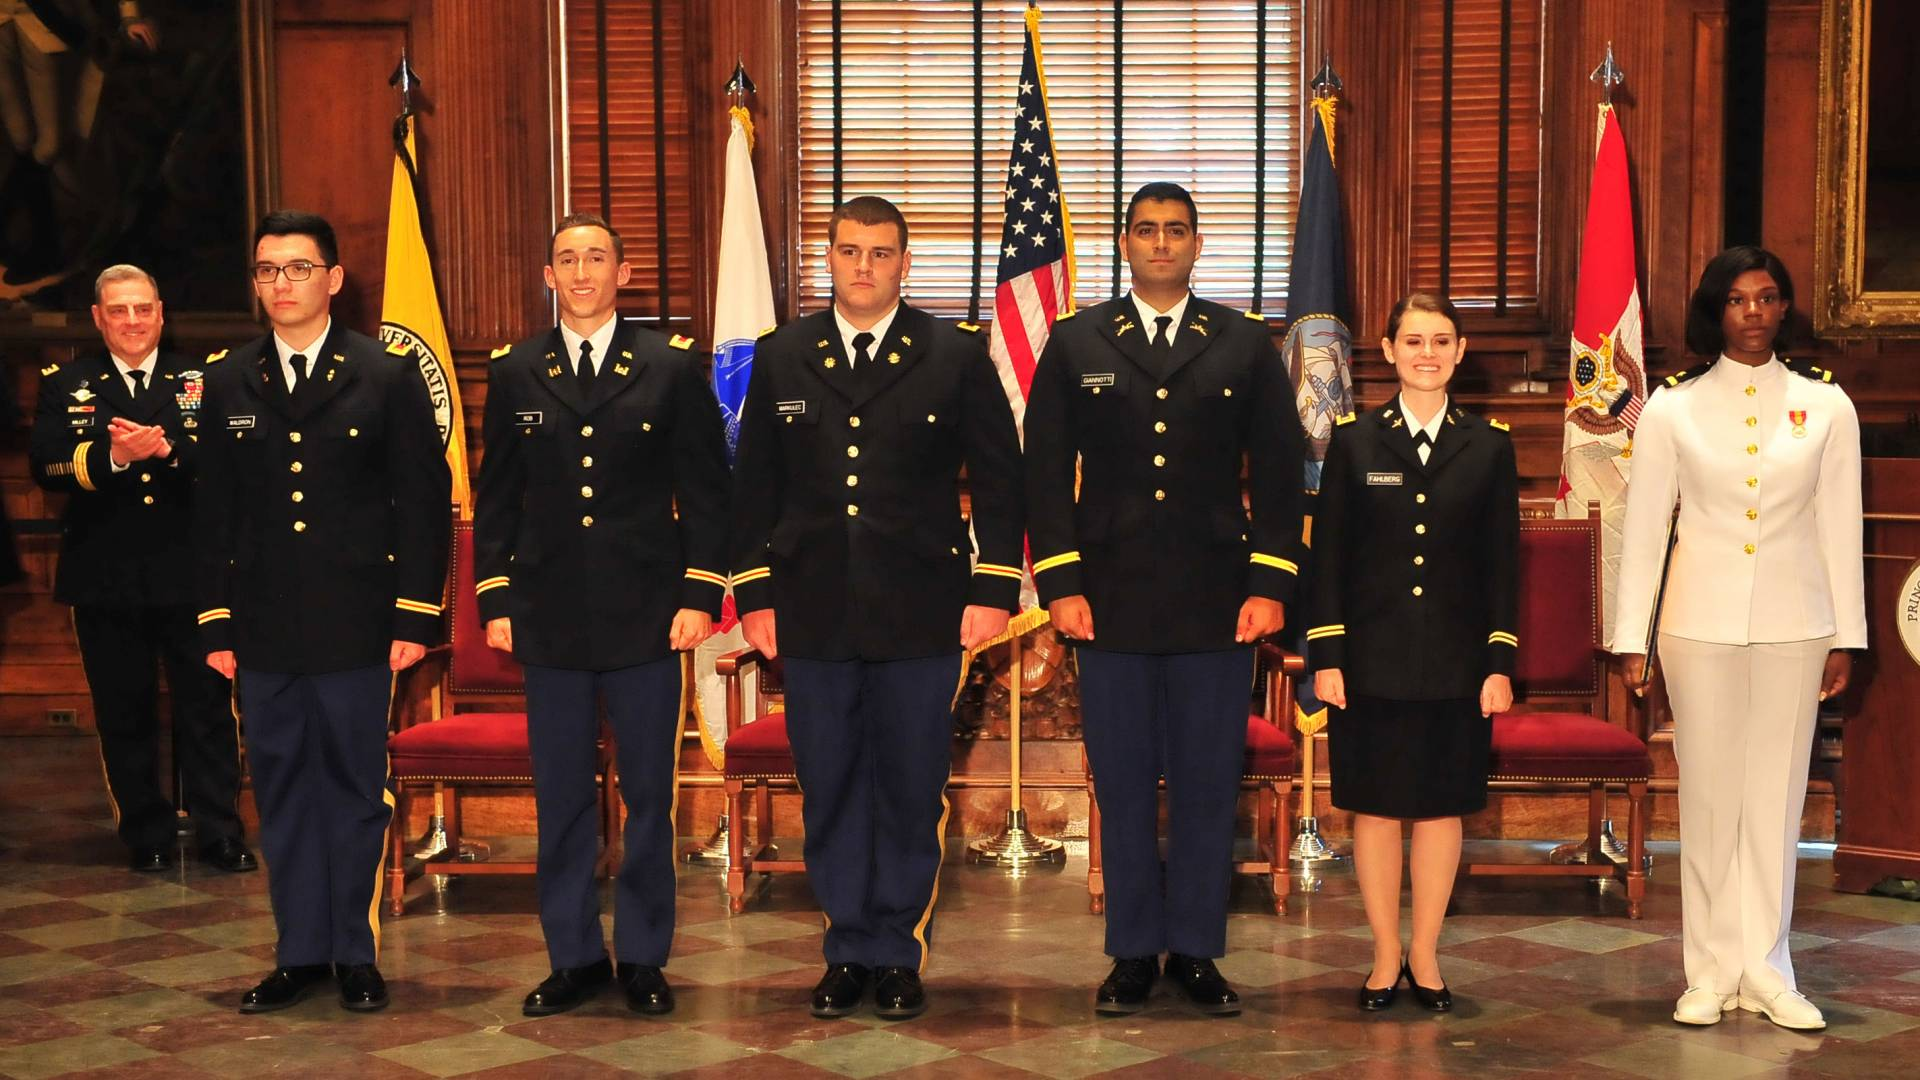 Theodore Waldron, Samuel Rob, Michael Markulec, Matthew Giannotti and Natalie Fahlberg and Christina Onianwa at ROTC Commissioning ceremony